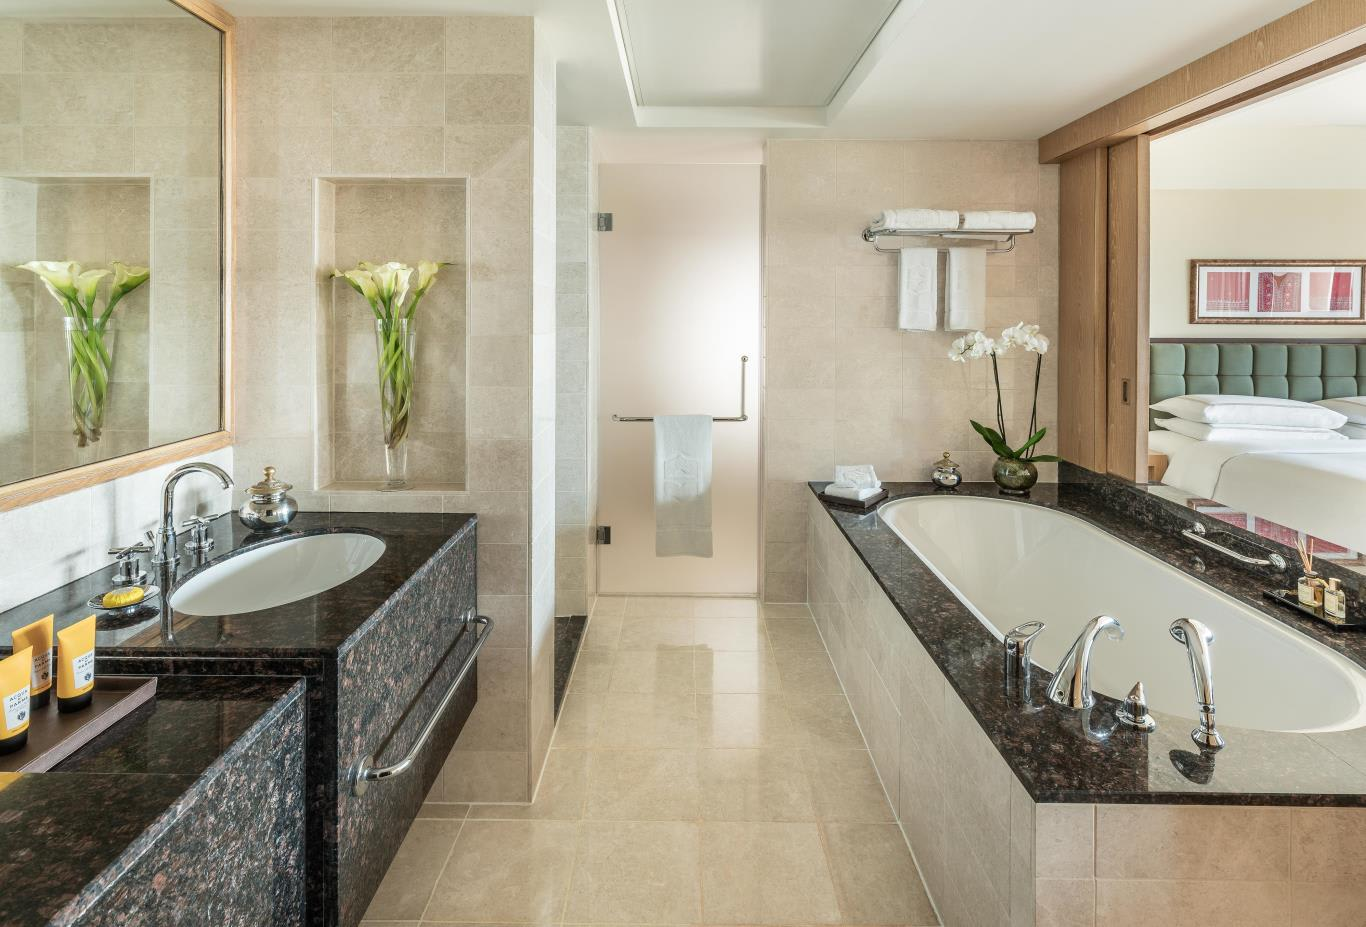 Al Bandar speciality suite bathroom